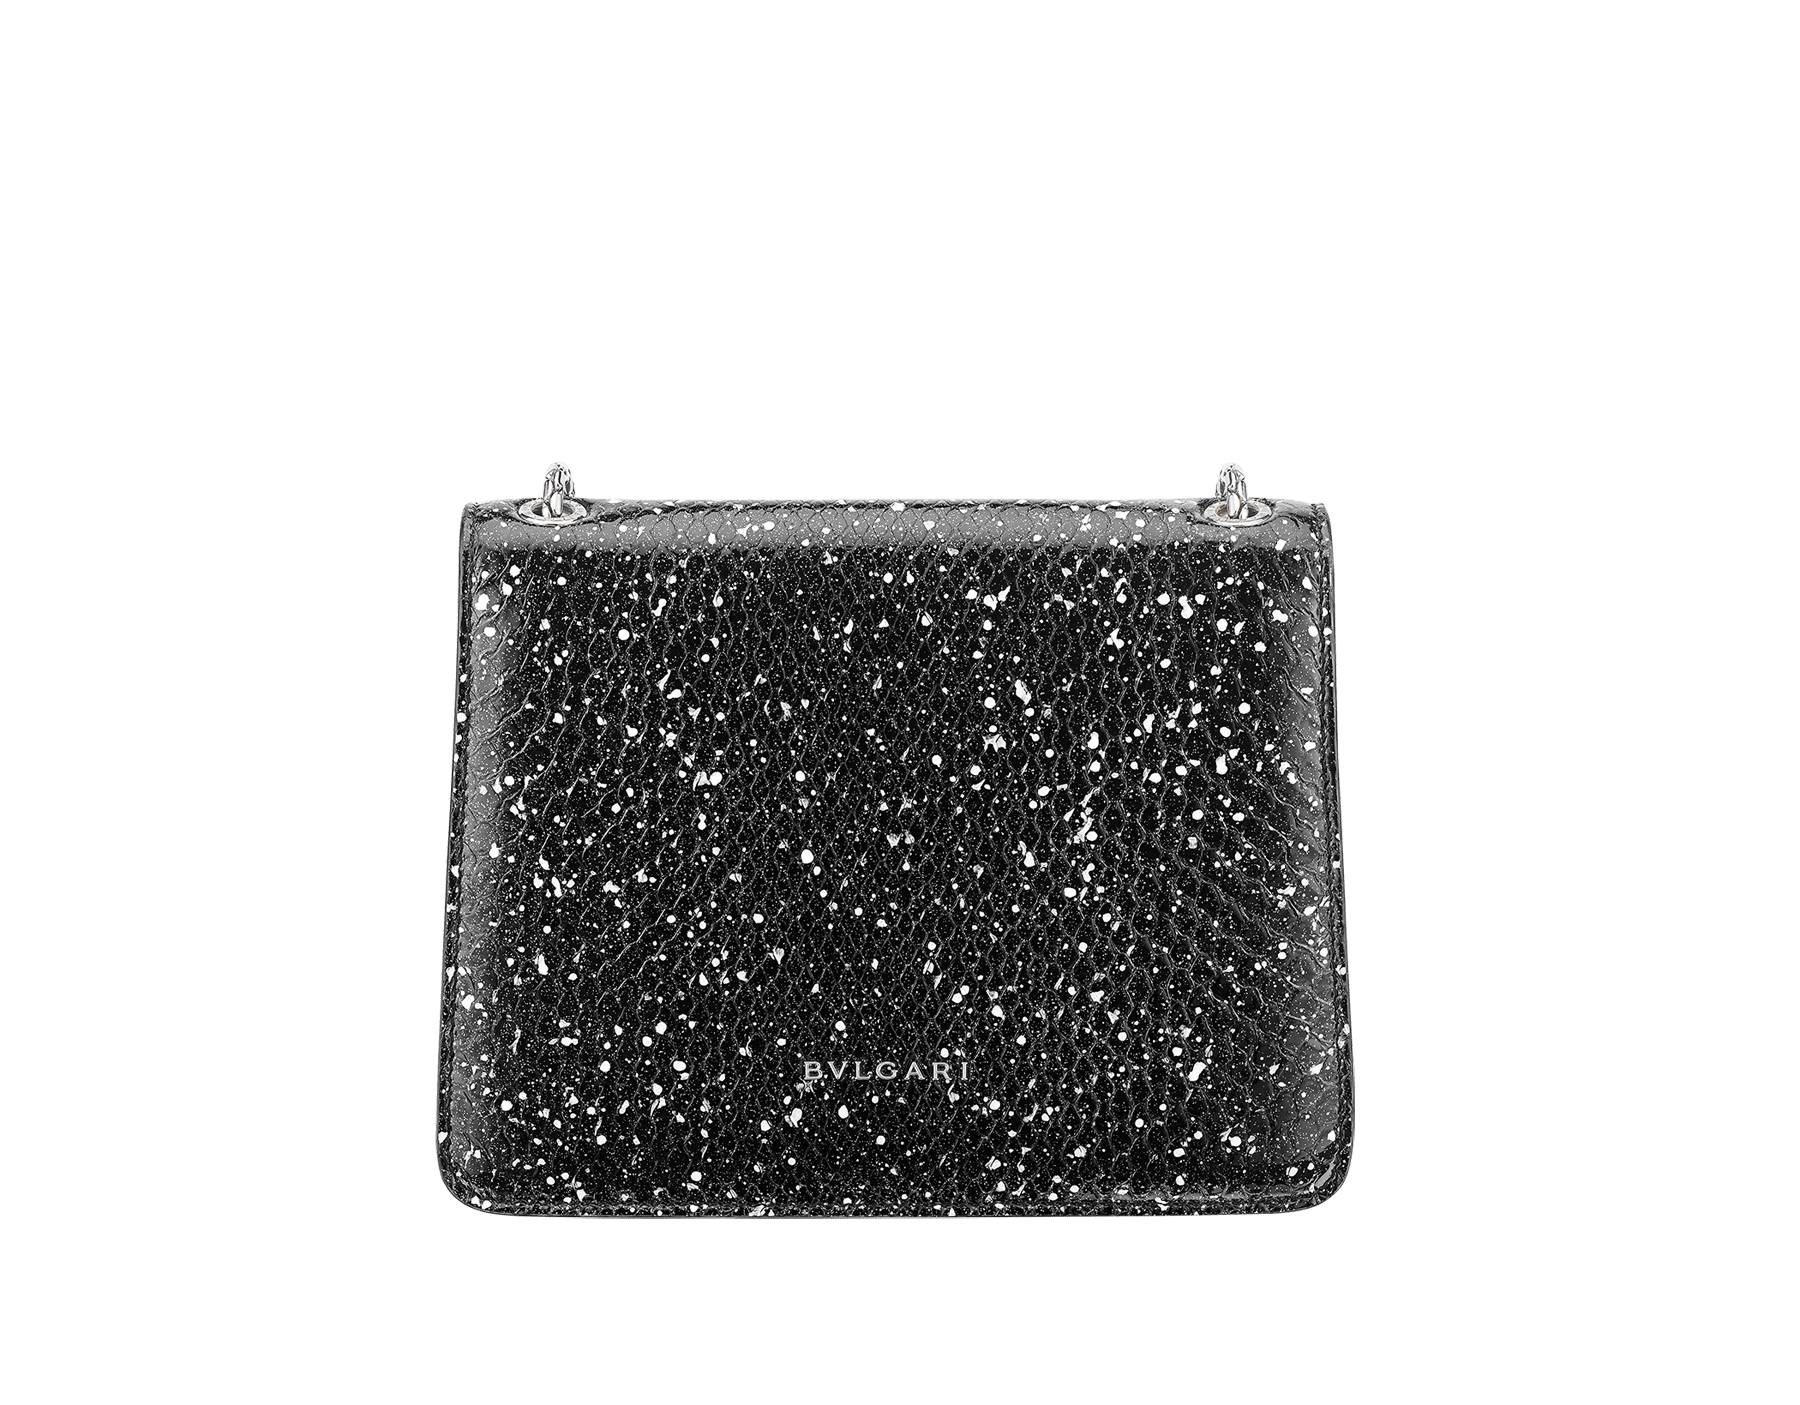 Serpenti Forever crossbody bag in black and white Cosmic python skin. Snakehead closure in palladium plated brass decorated with black and white enamel, and black onyx eyes. 288110 image 3